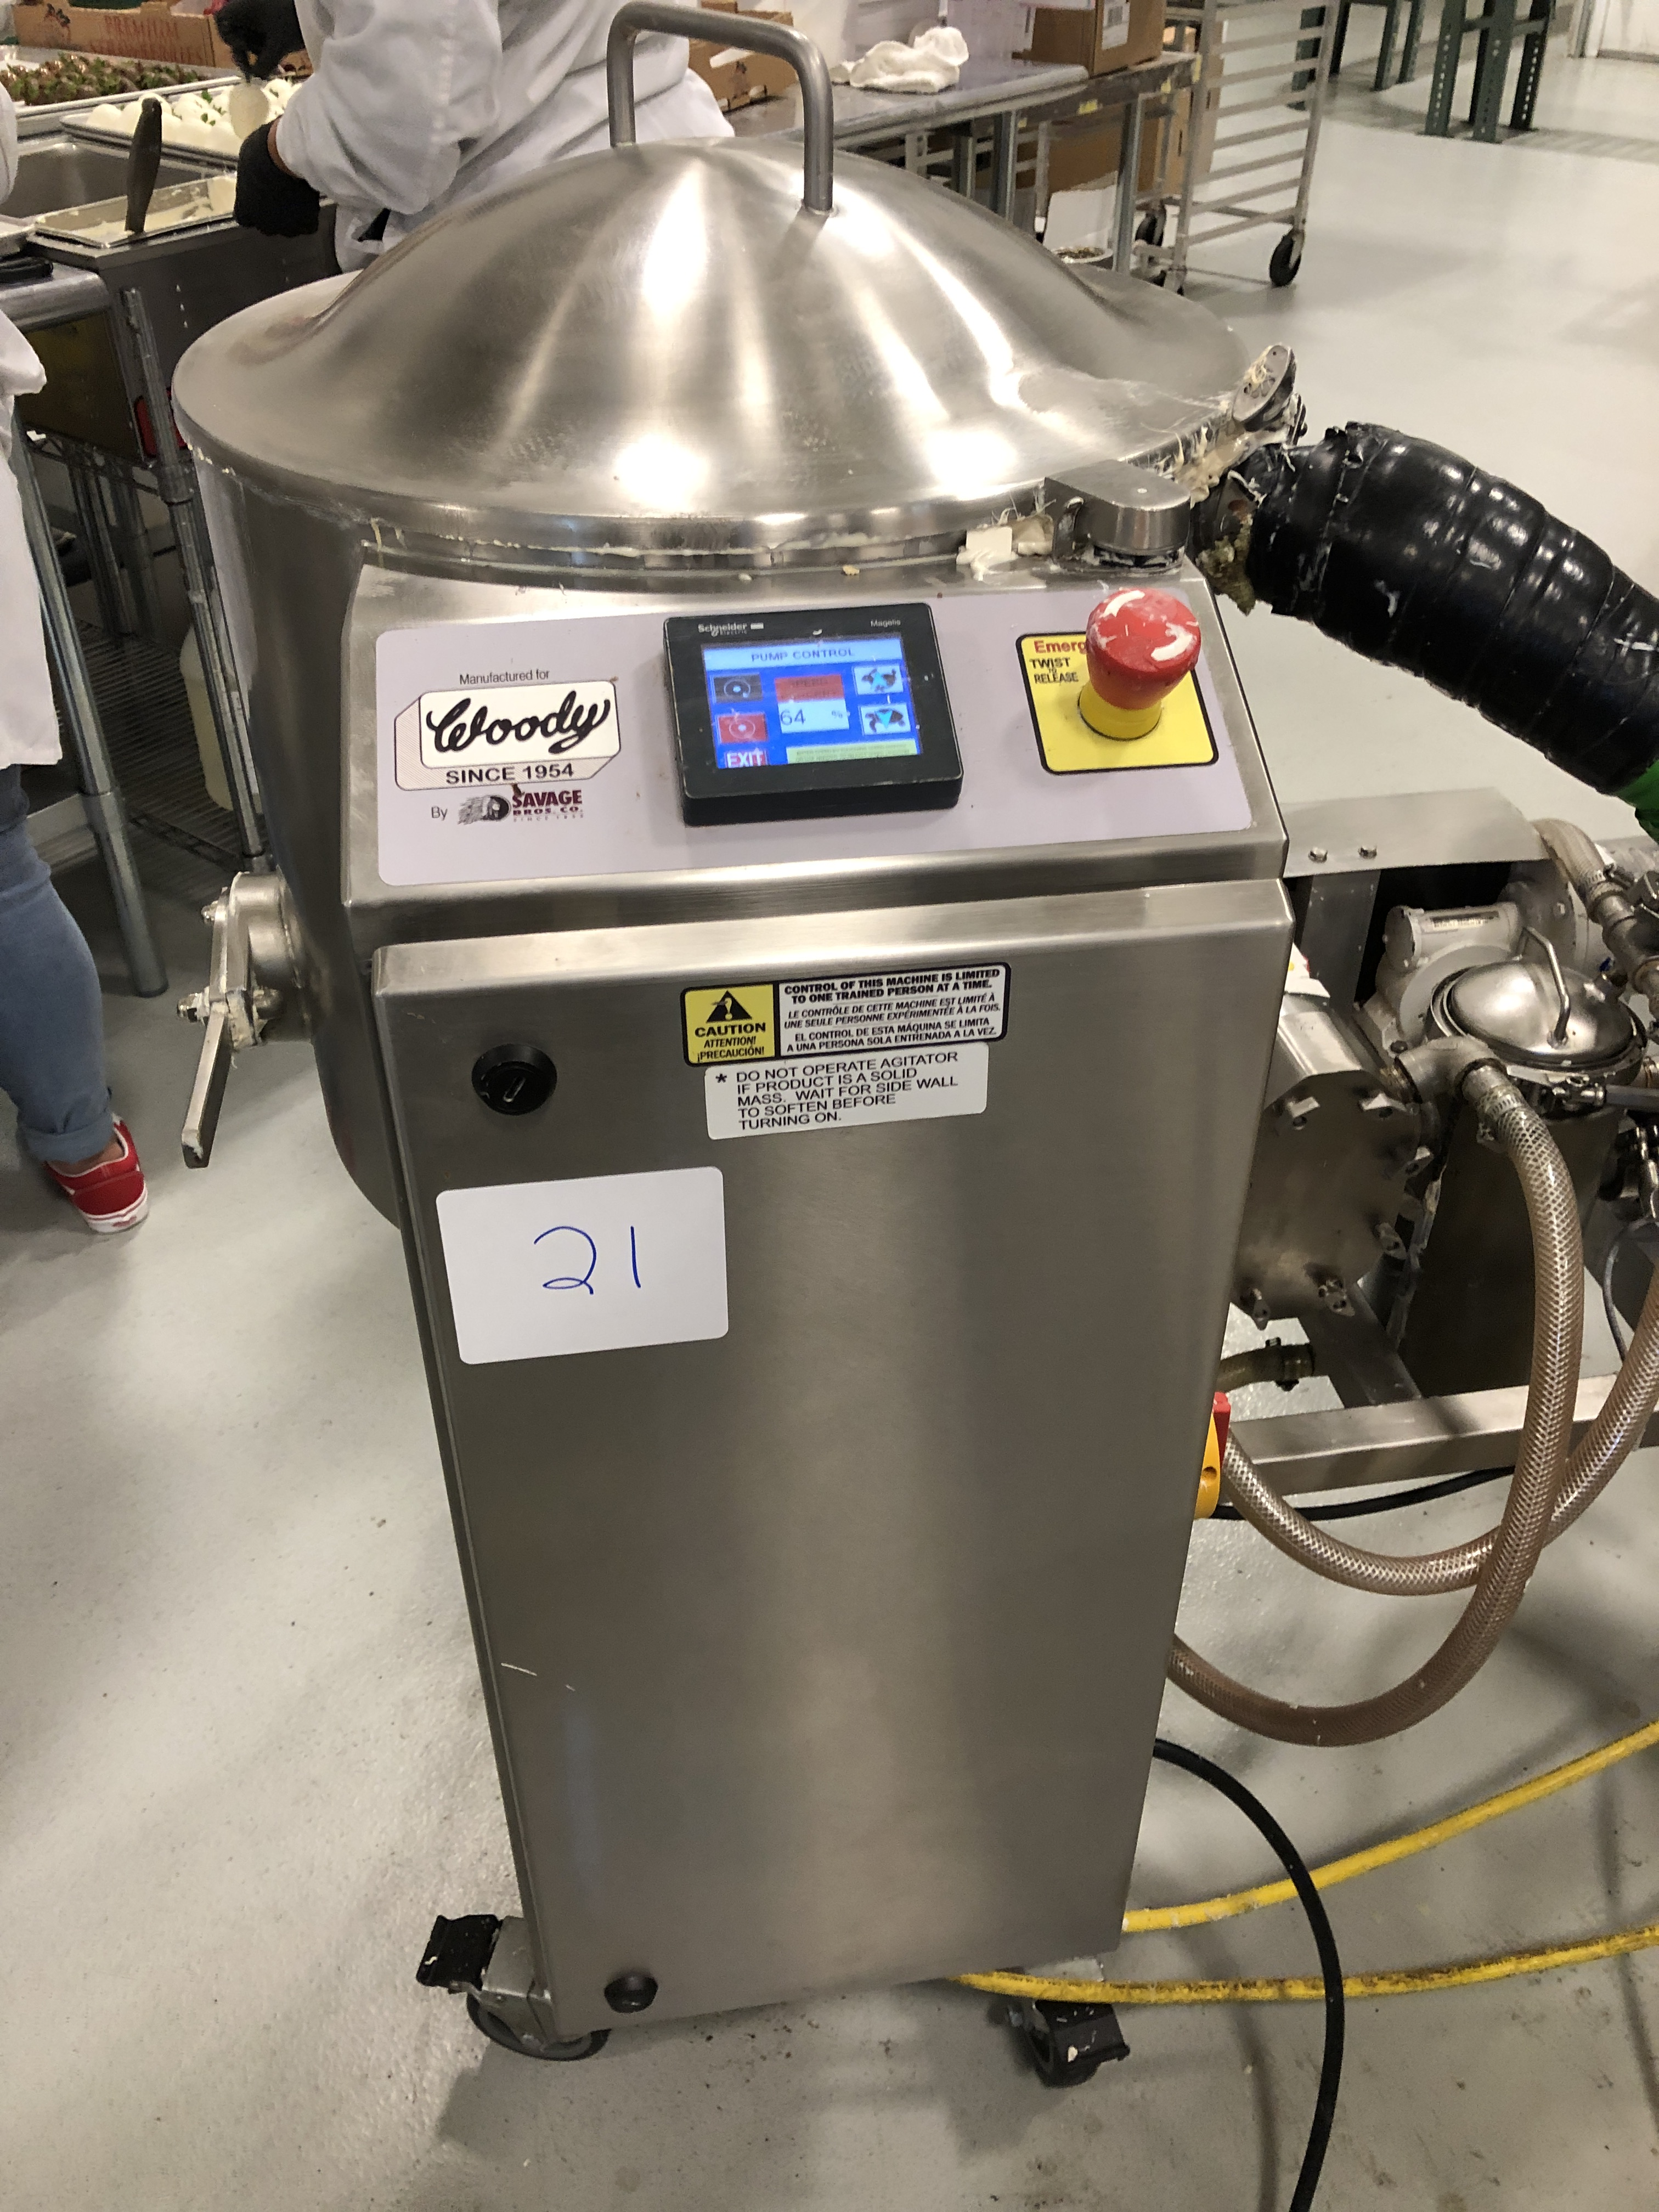 Lot 15 - Savage/Woody 125 lb Stainless Steel Chocolate Melter with Touchscreen controls, jacketed and